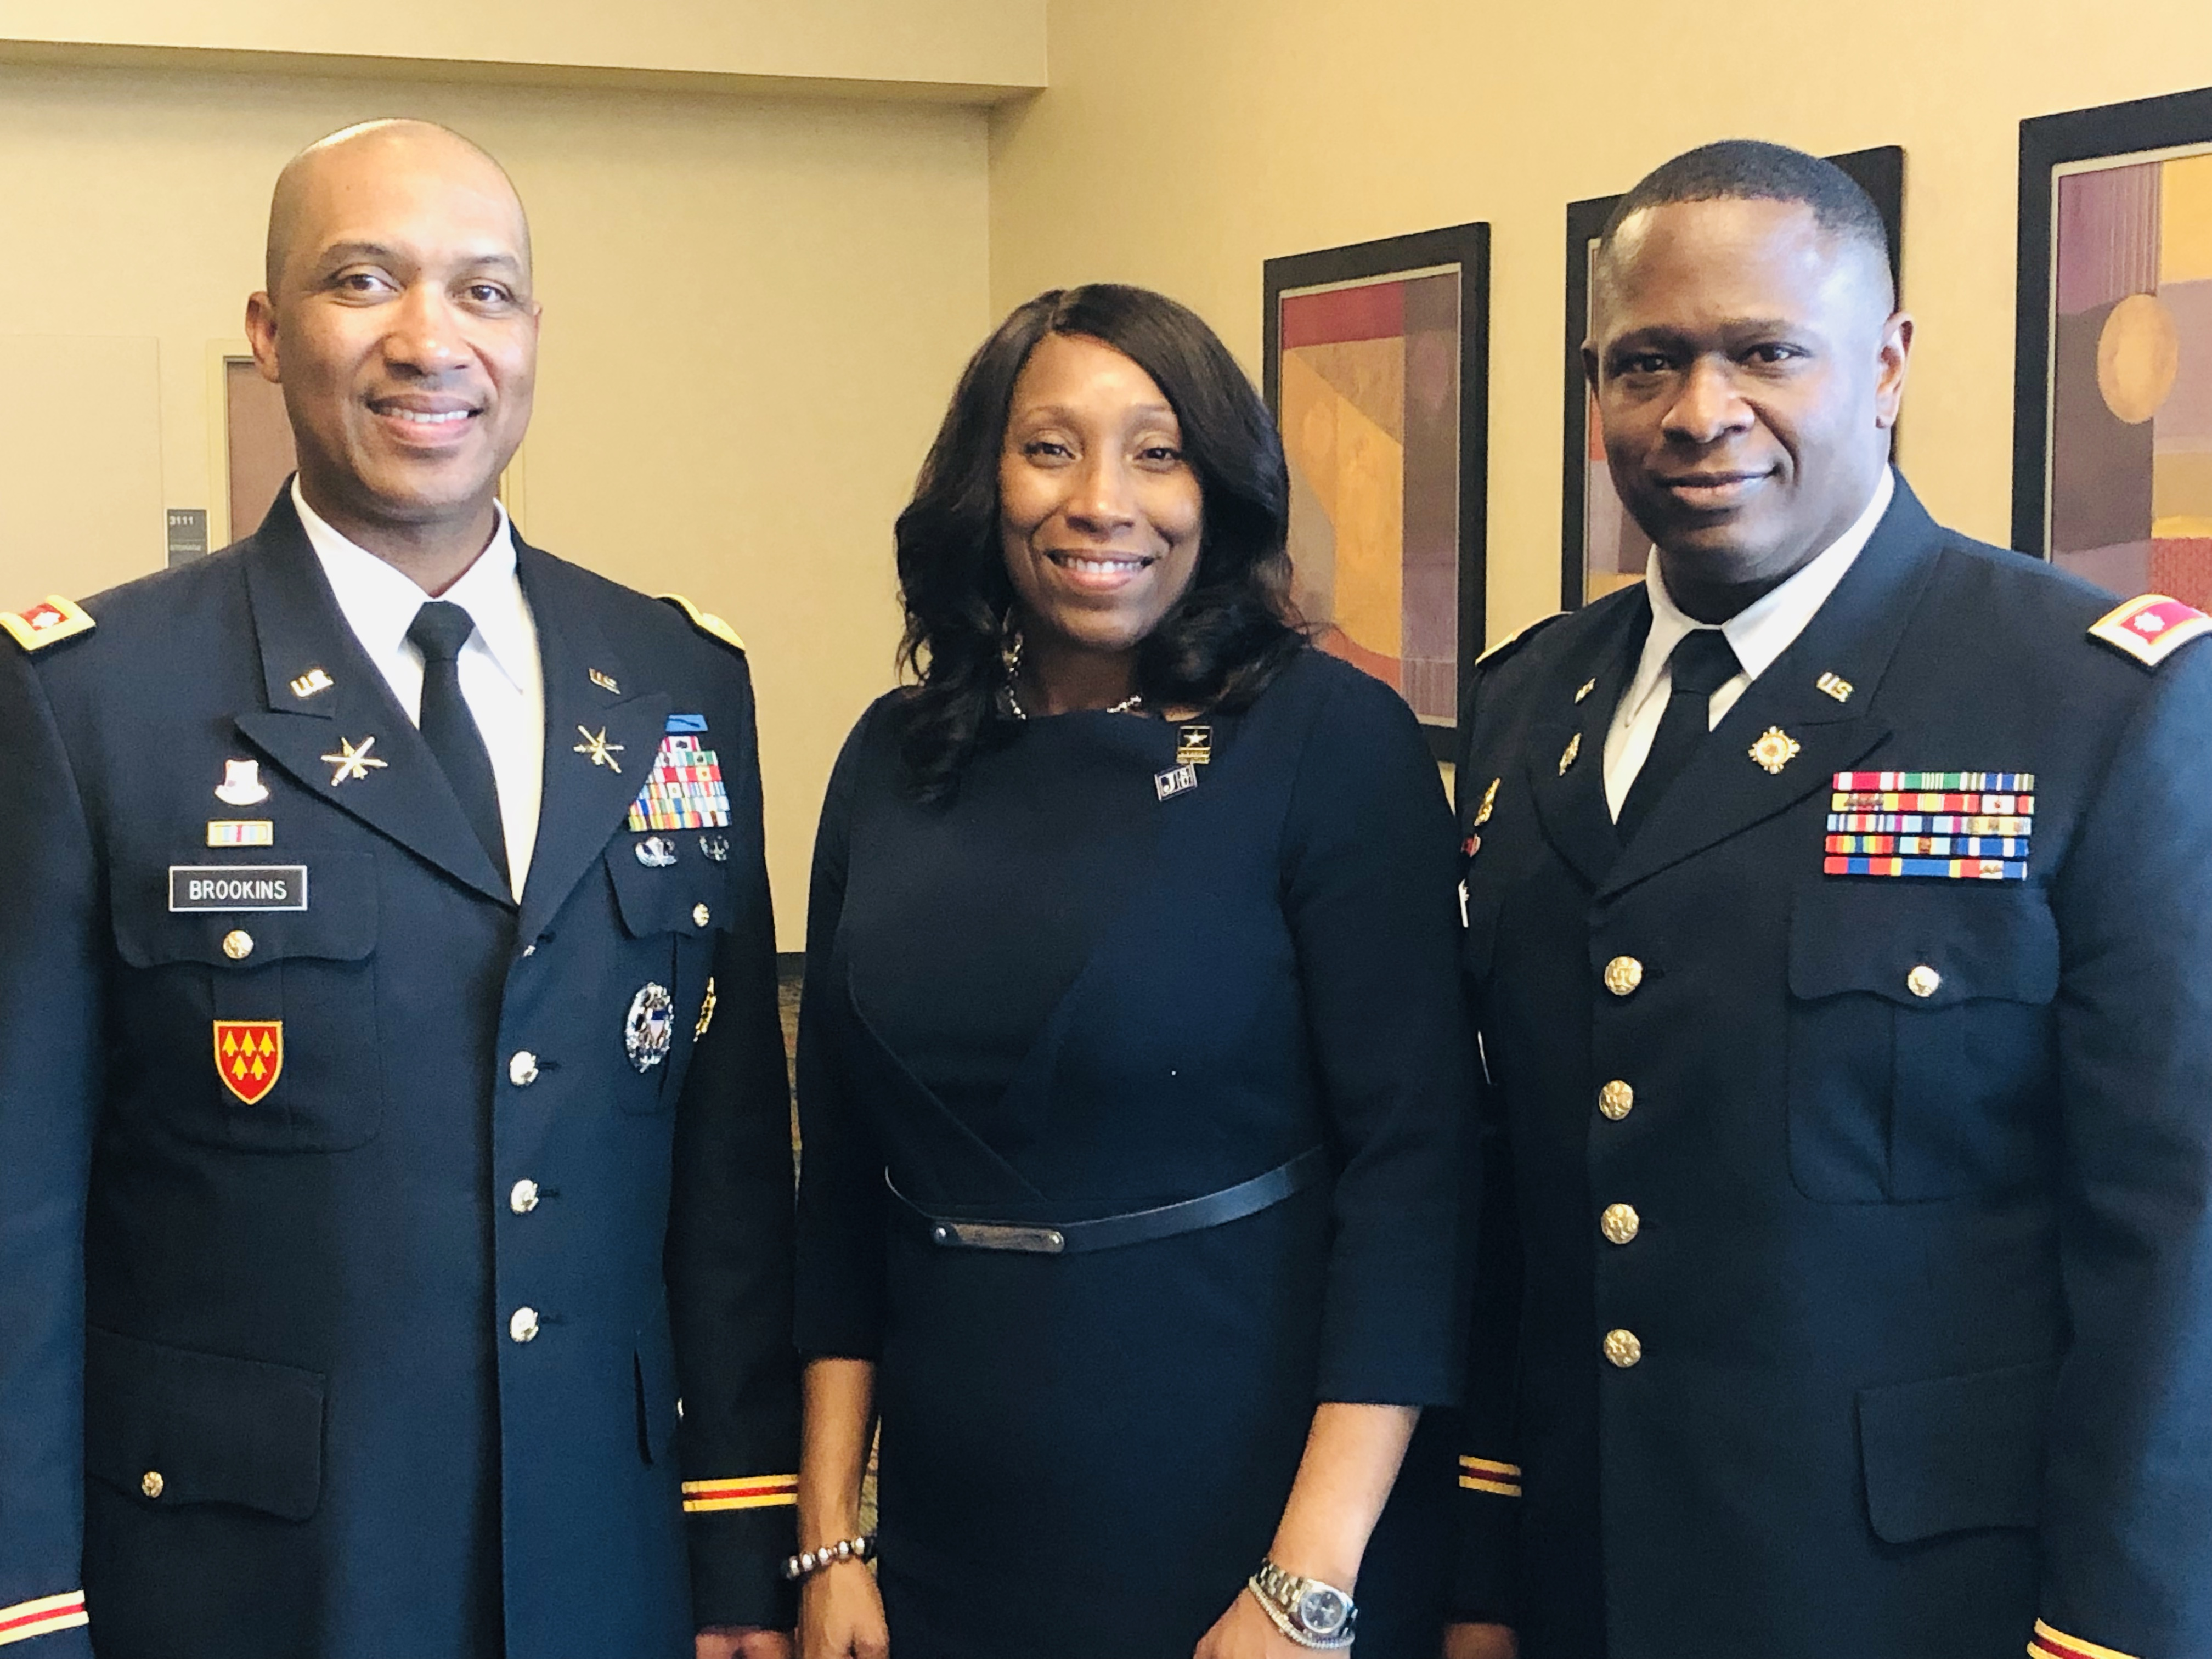 Lt. Col. Dexter M. Brookins, chair and professor of the Department of Military Science, welcomes keynote speaker Lt. Col. G. Torrie Jackson Jr., who's accompanied by his wife Debra Mays-Jackson, vice president and chief of staff for JSU. The military officer delivered the Veterans Day address Friday. (Photo by L.A. Warren/JSU)